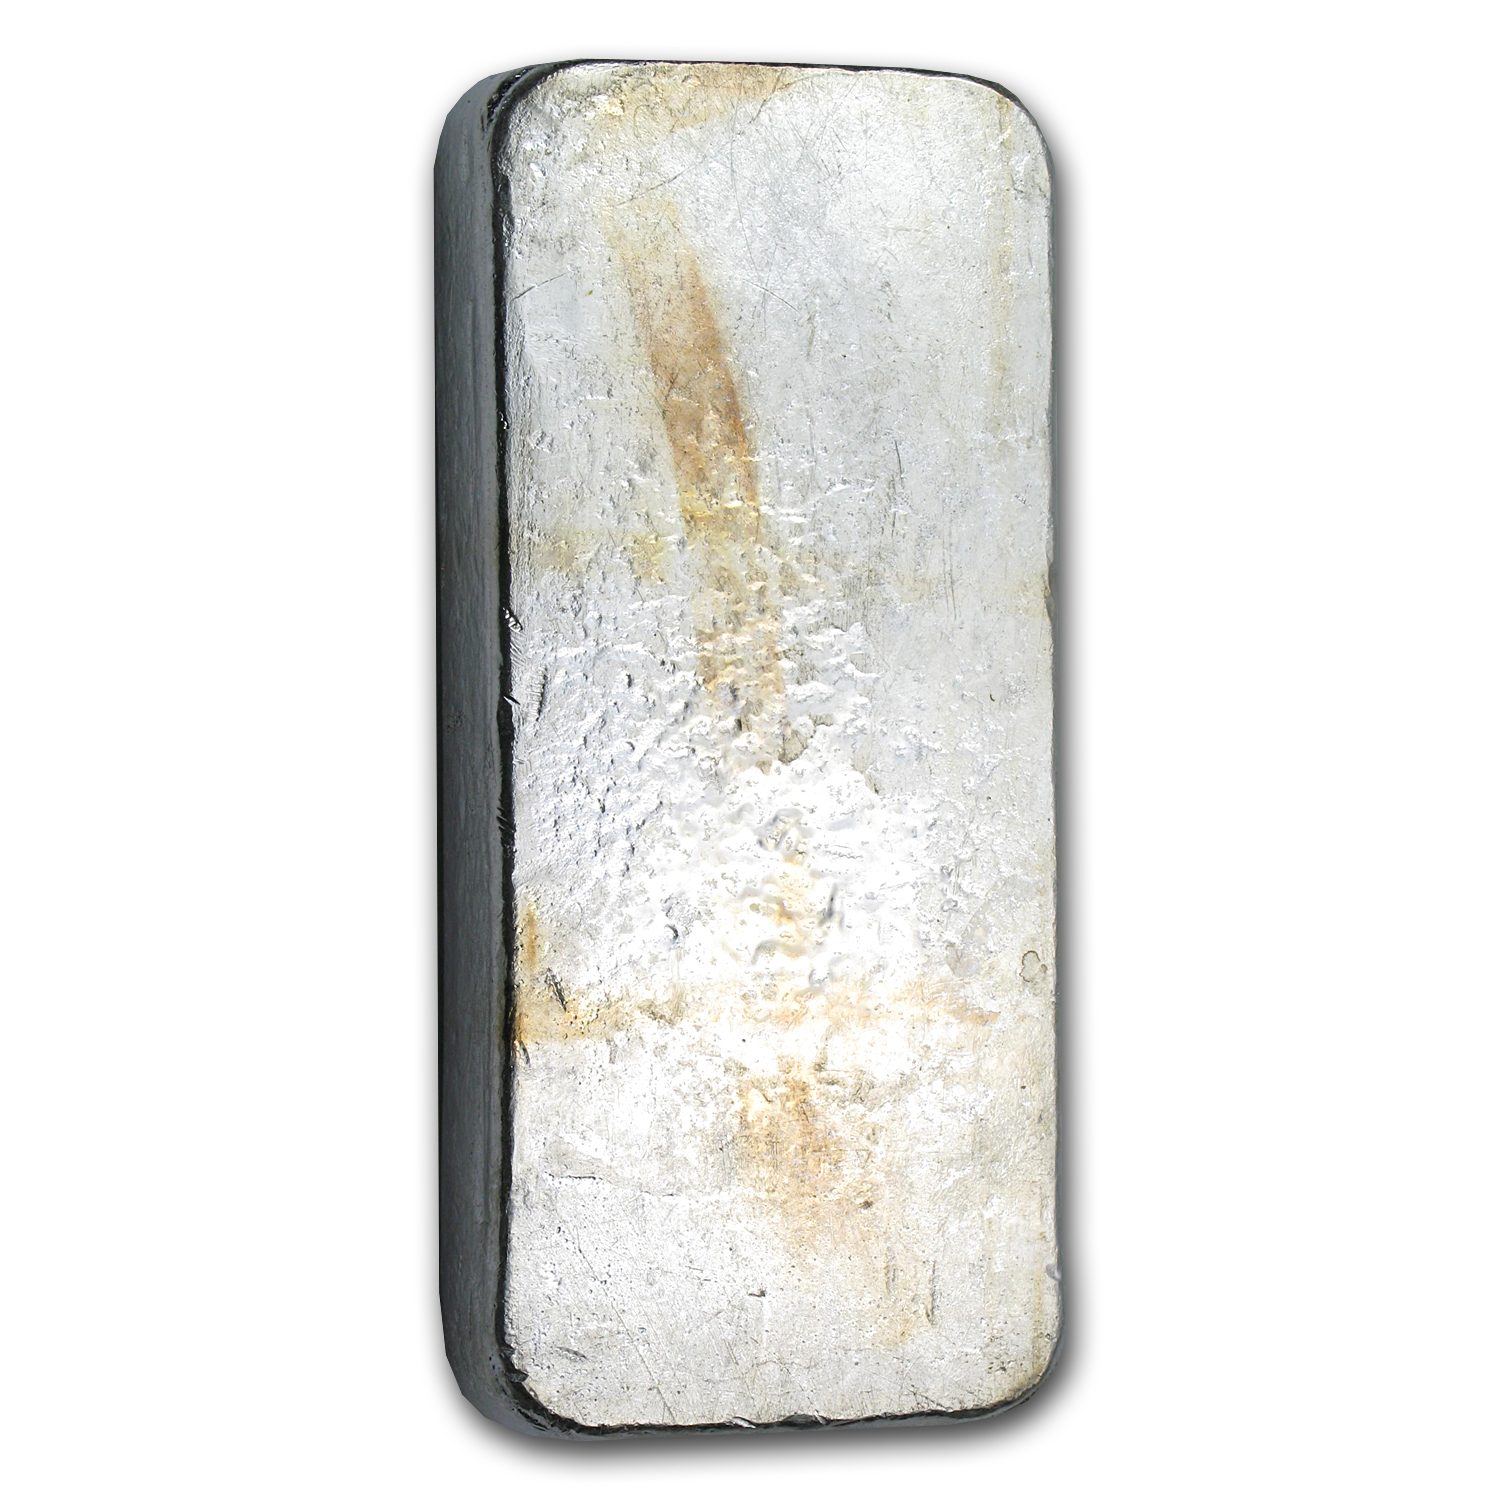 1 kilo Silver Bar - Johnson Matthey (Serial #/Canada)